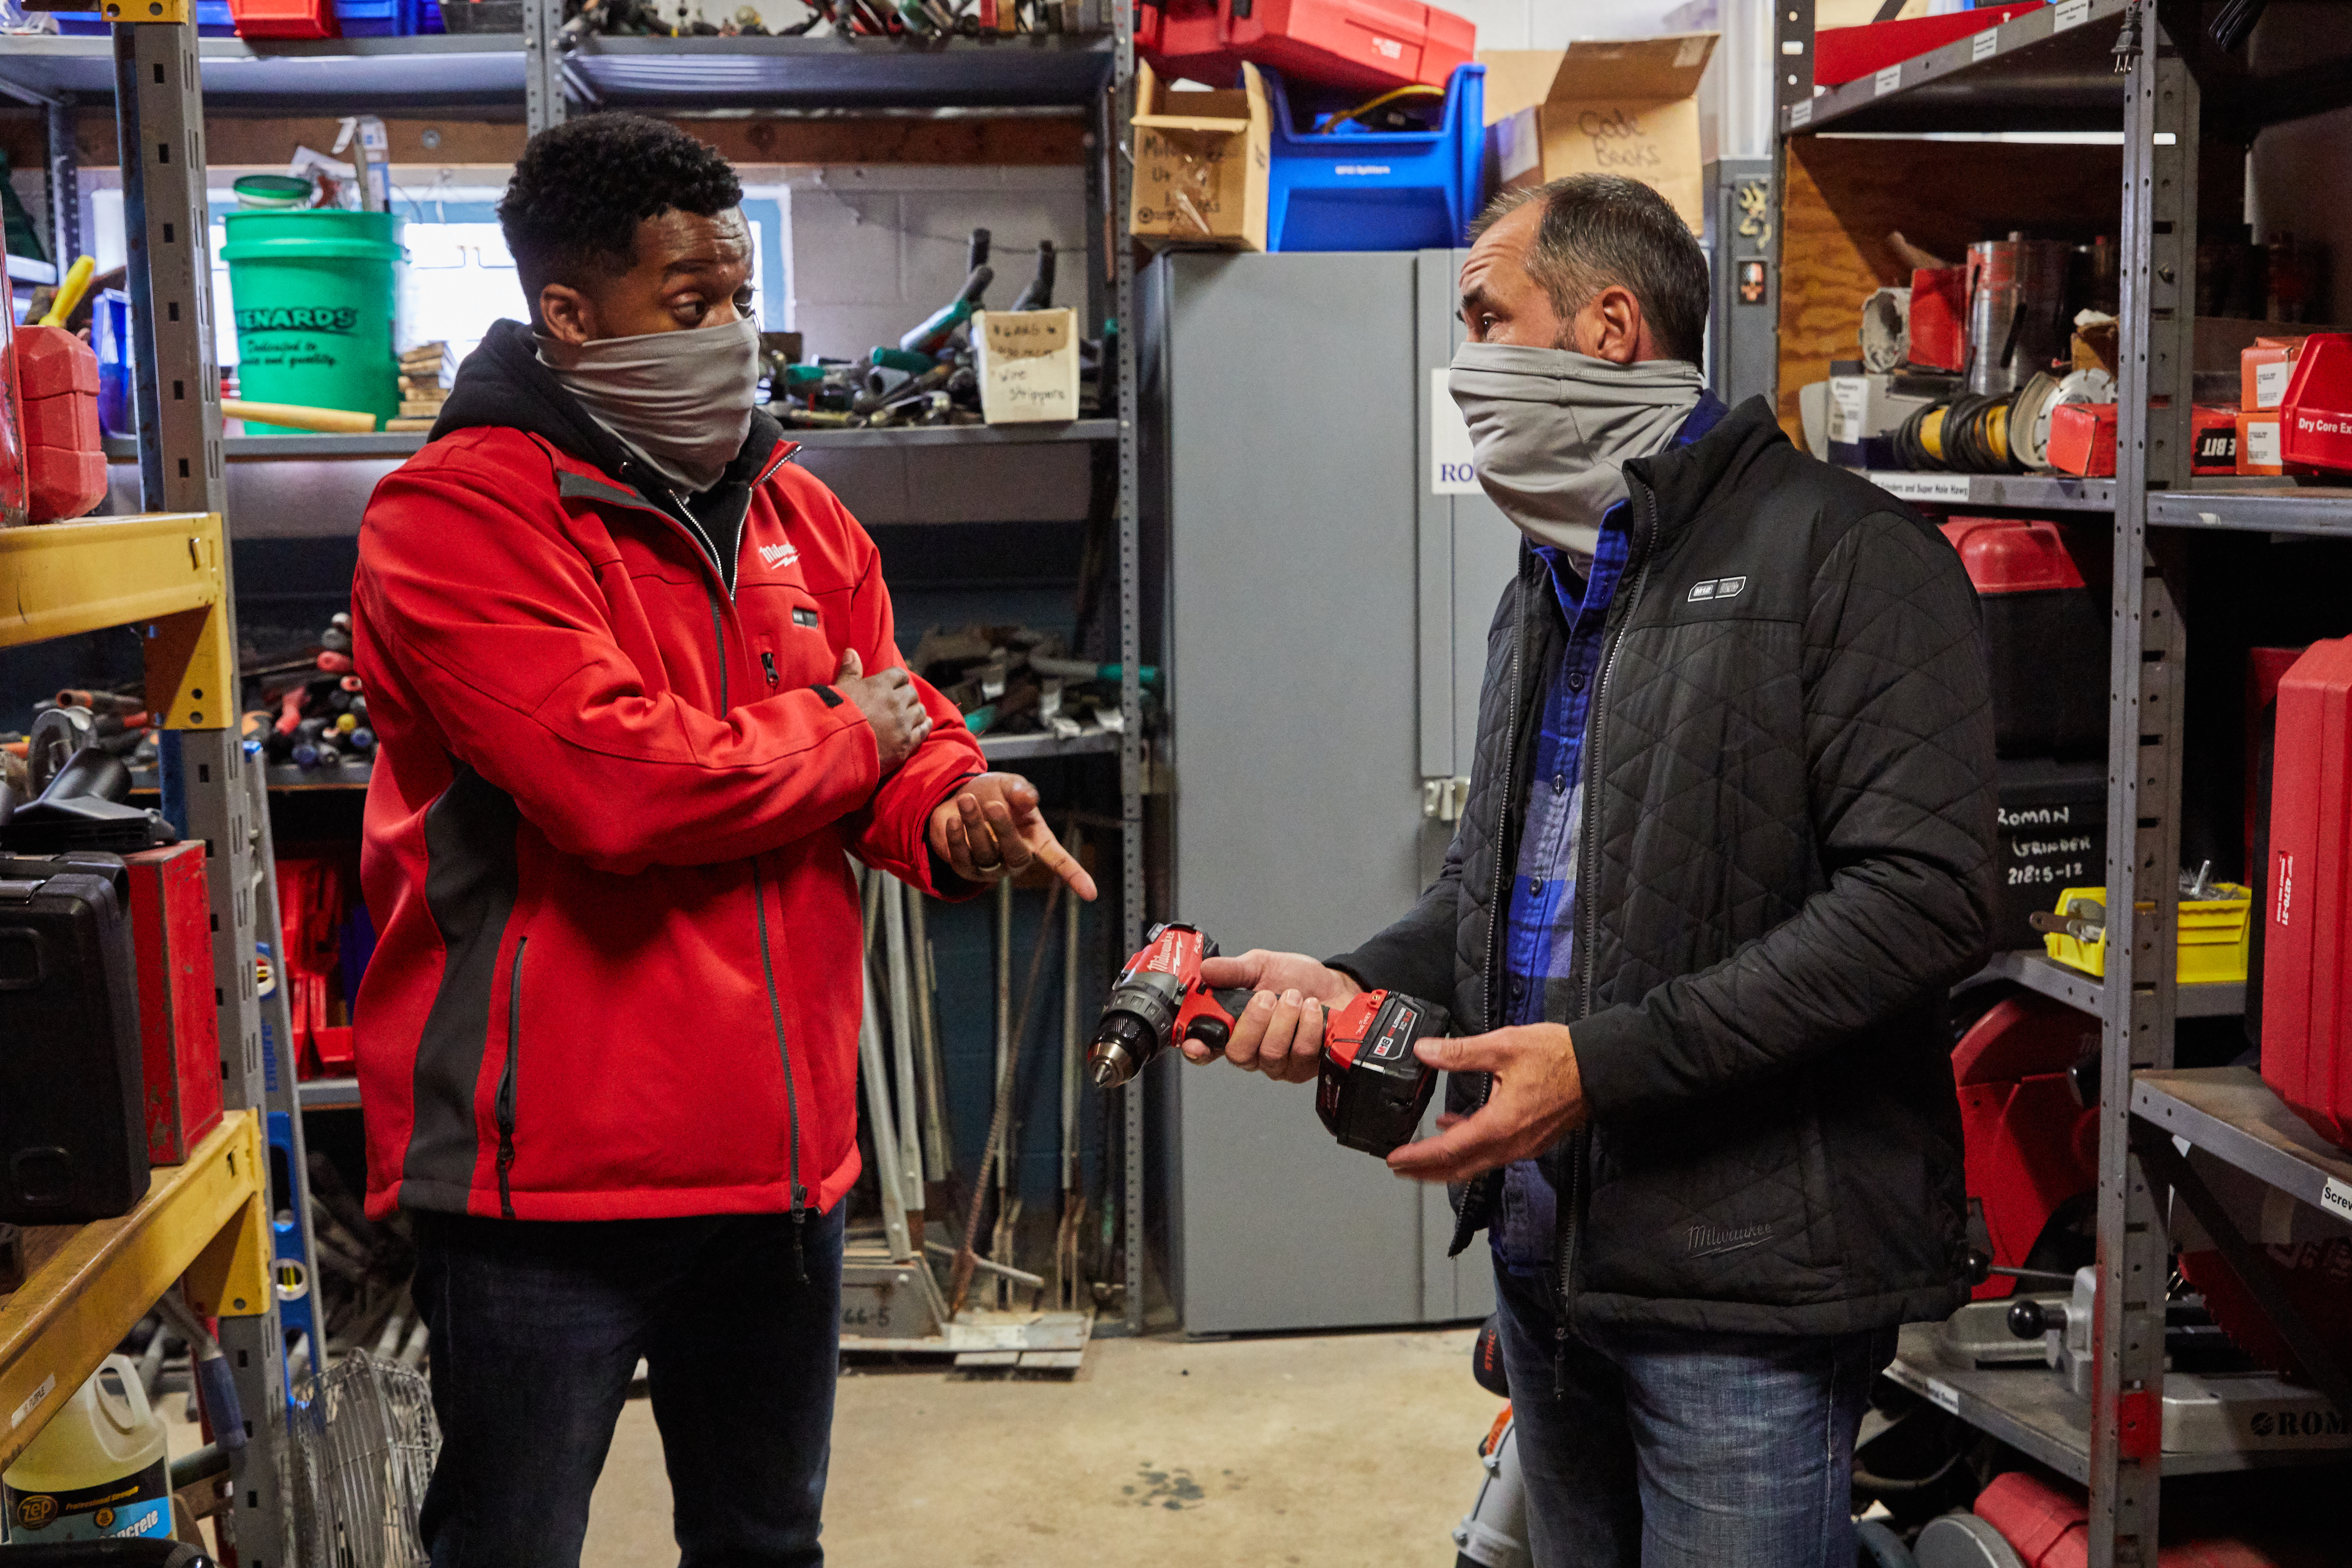 Two tool crib managers confer